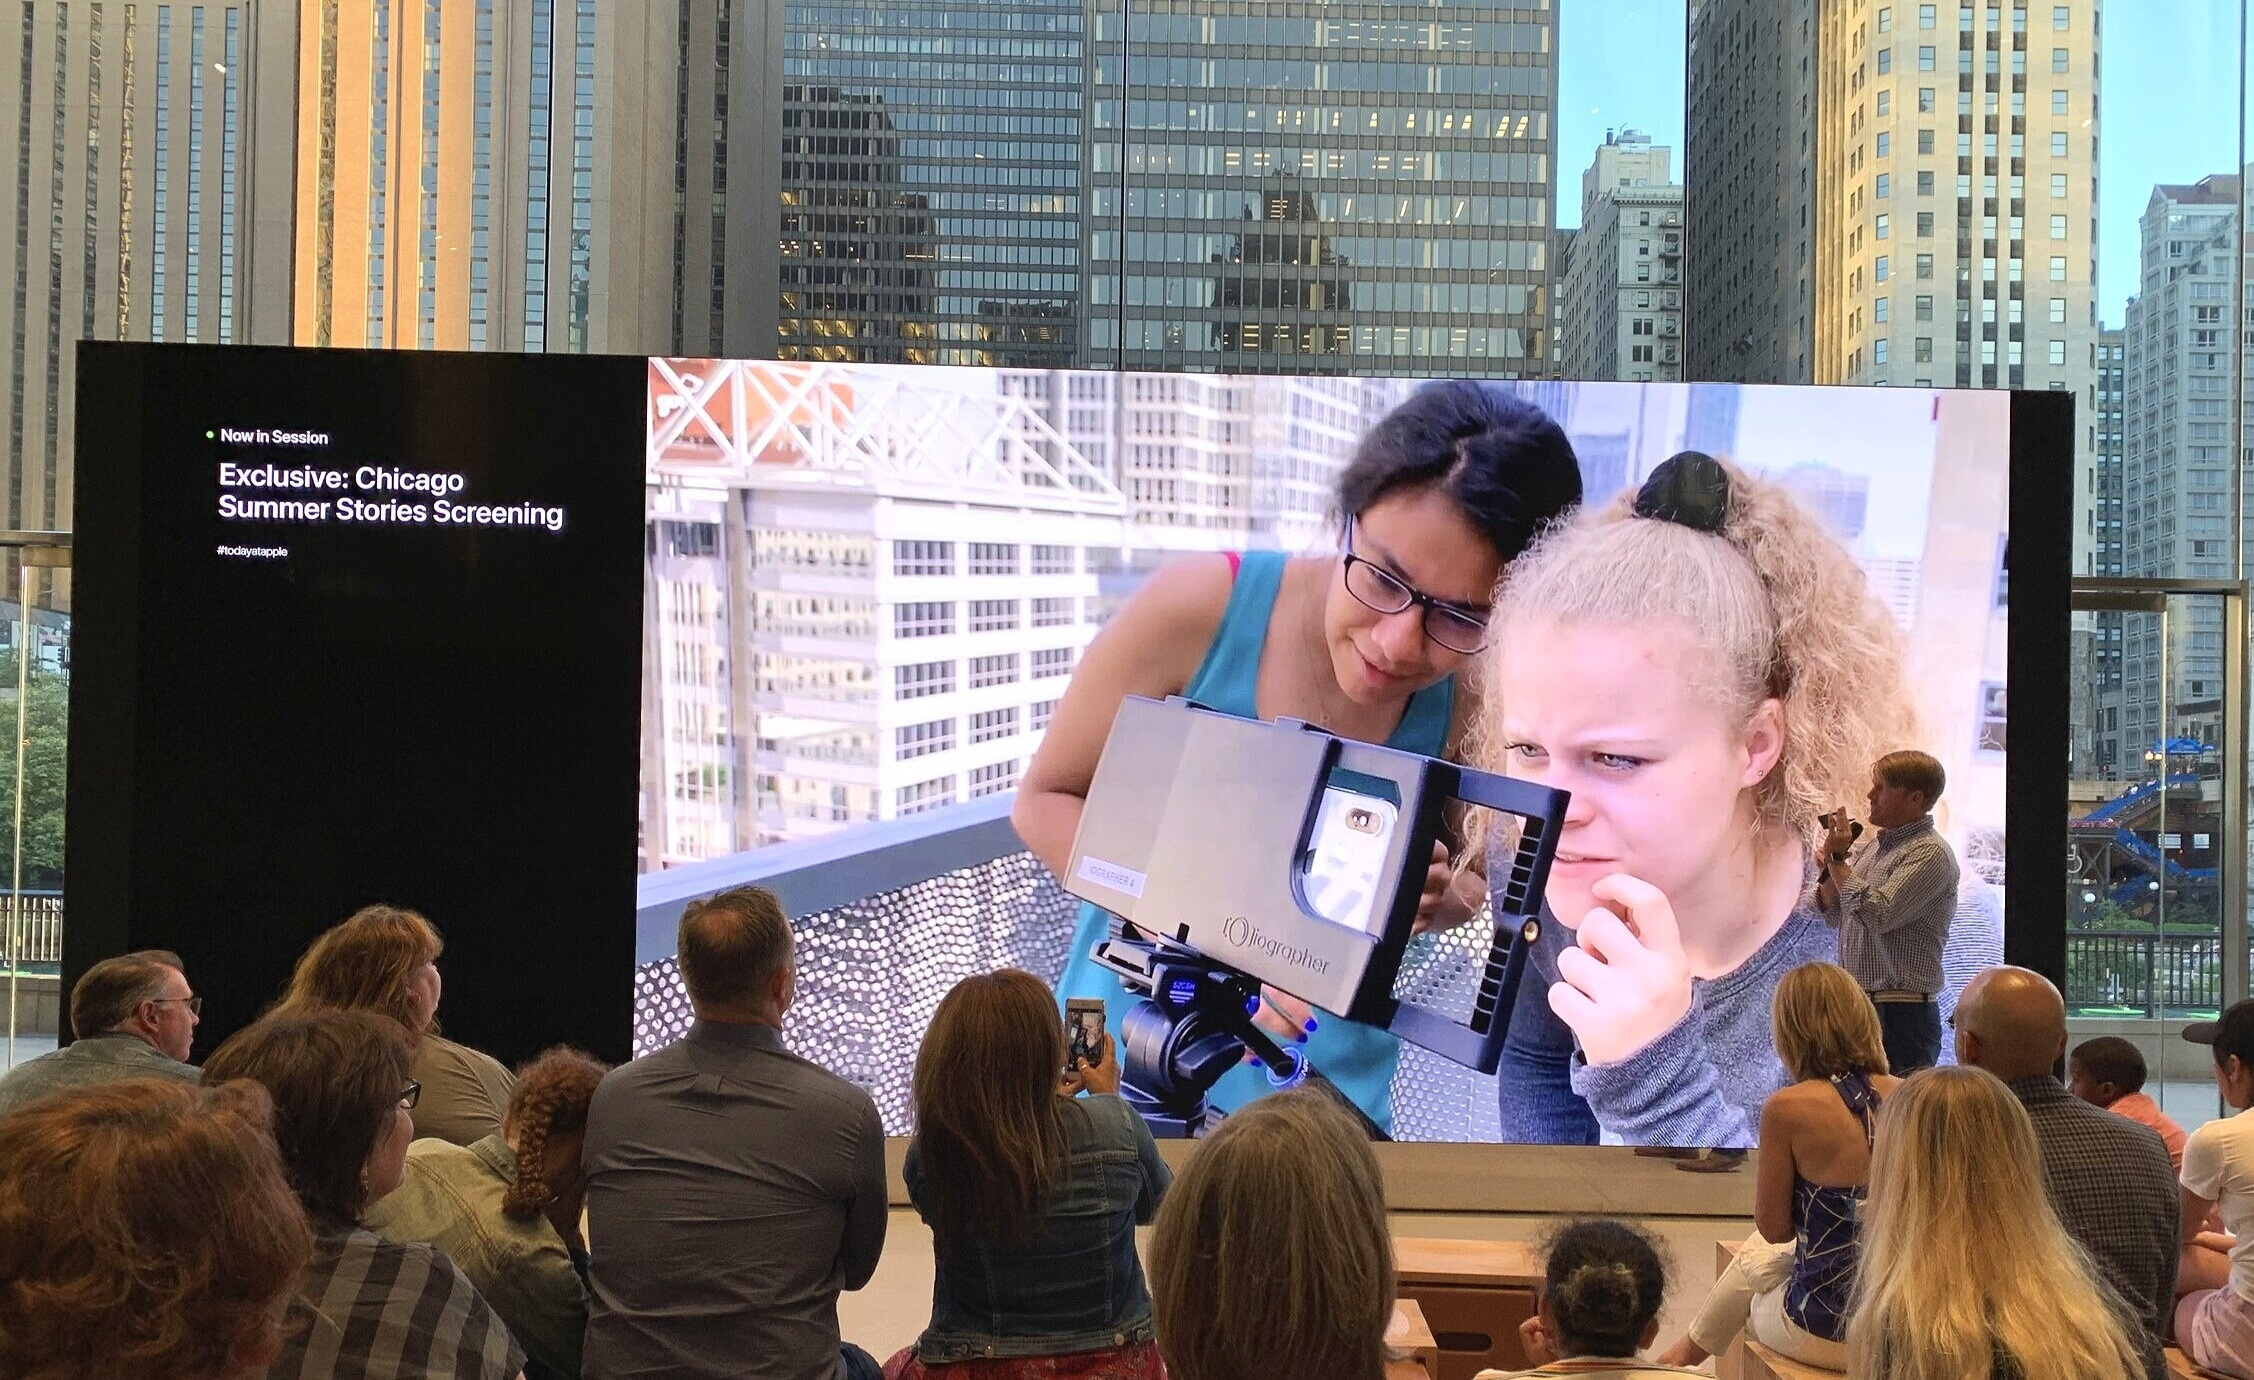 2019 Chicago Summer Stories screening at the flagship Apple store on Michigan Ave in Chicago!